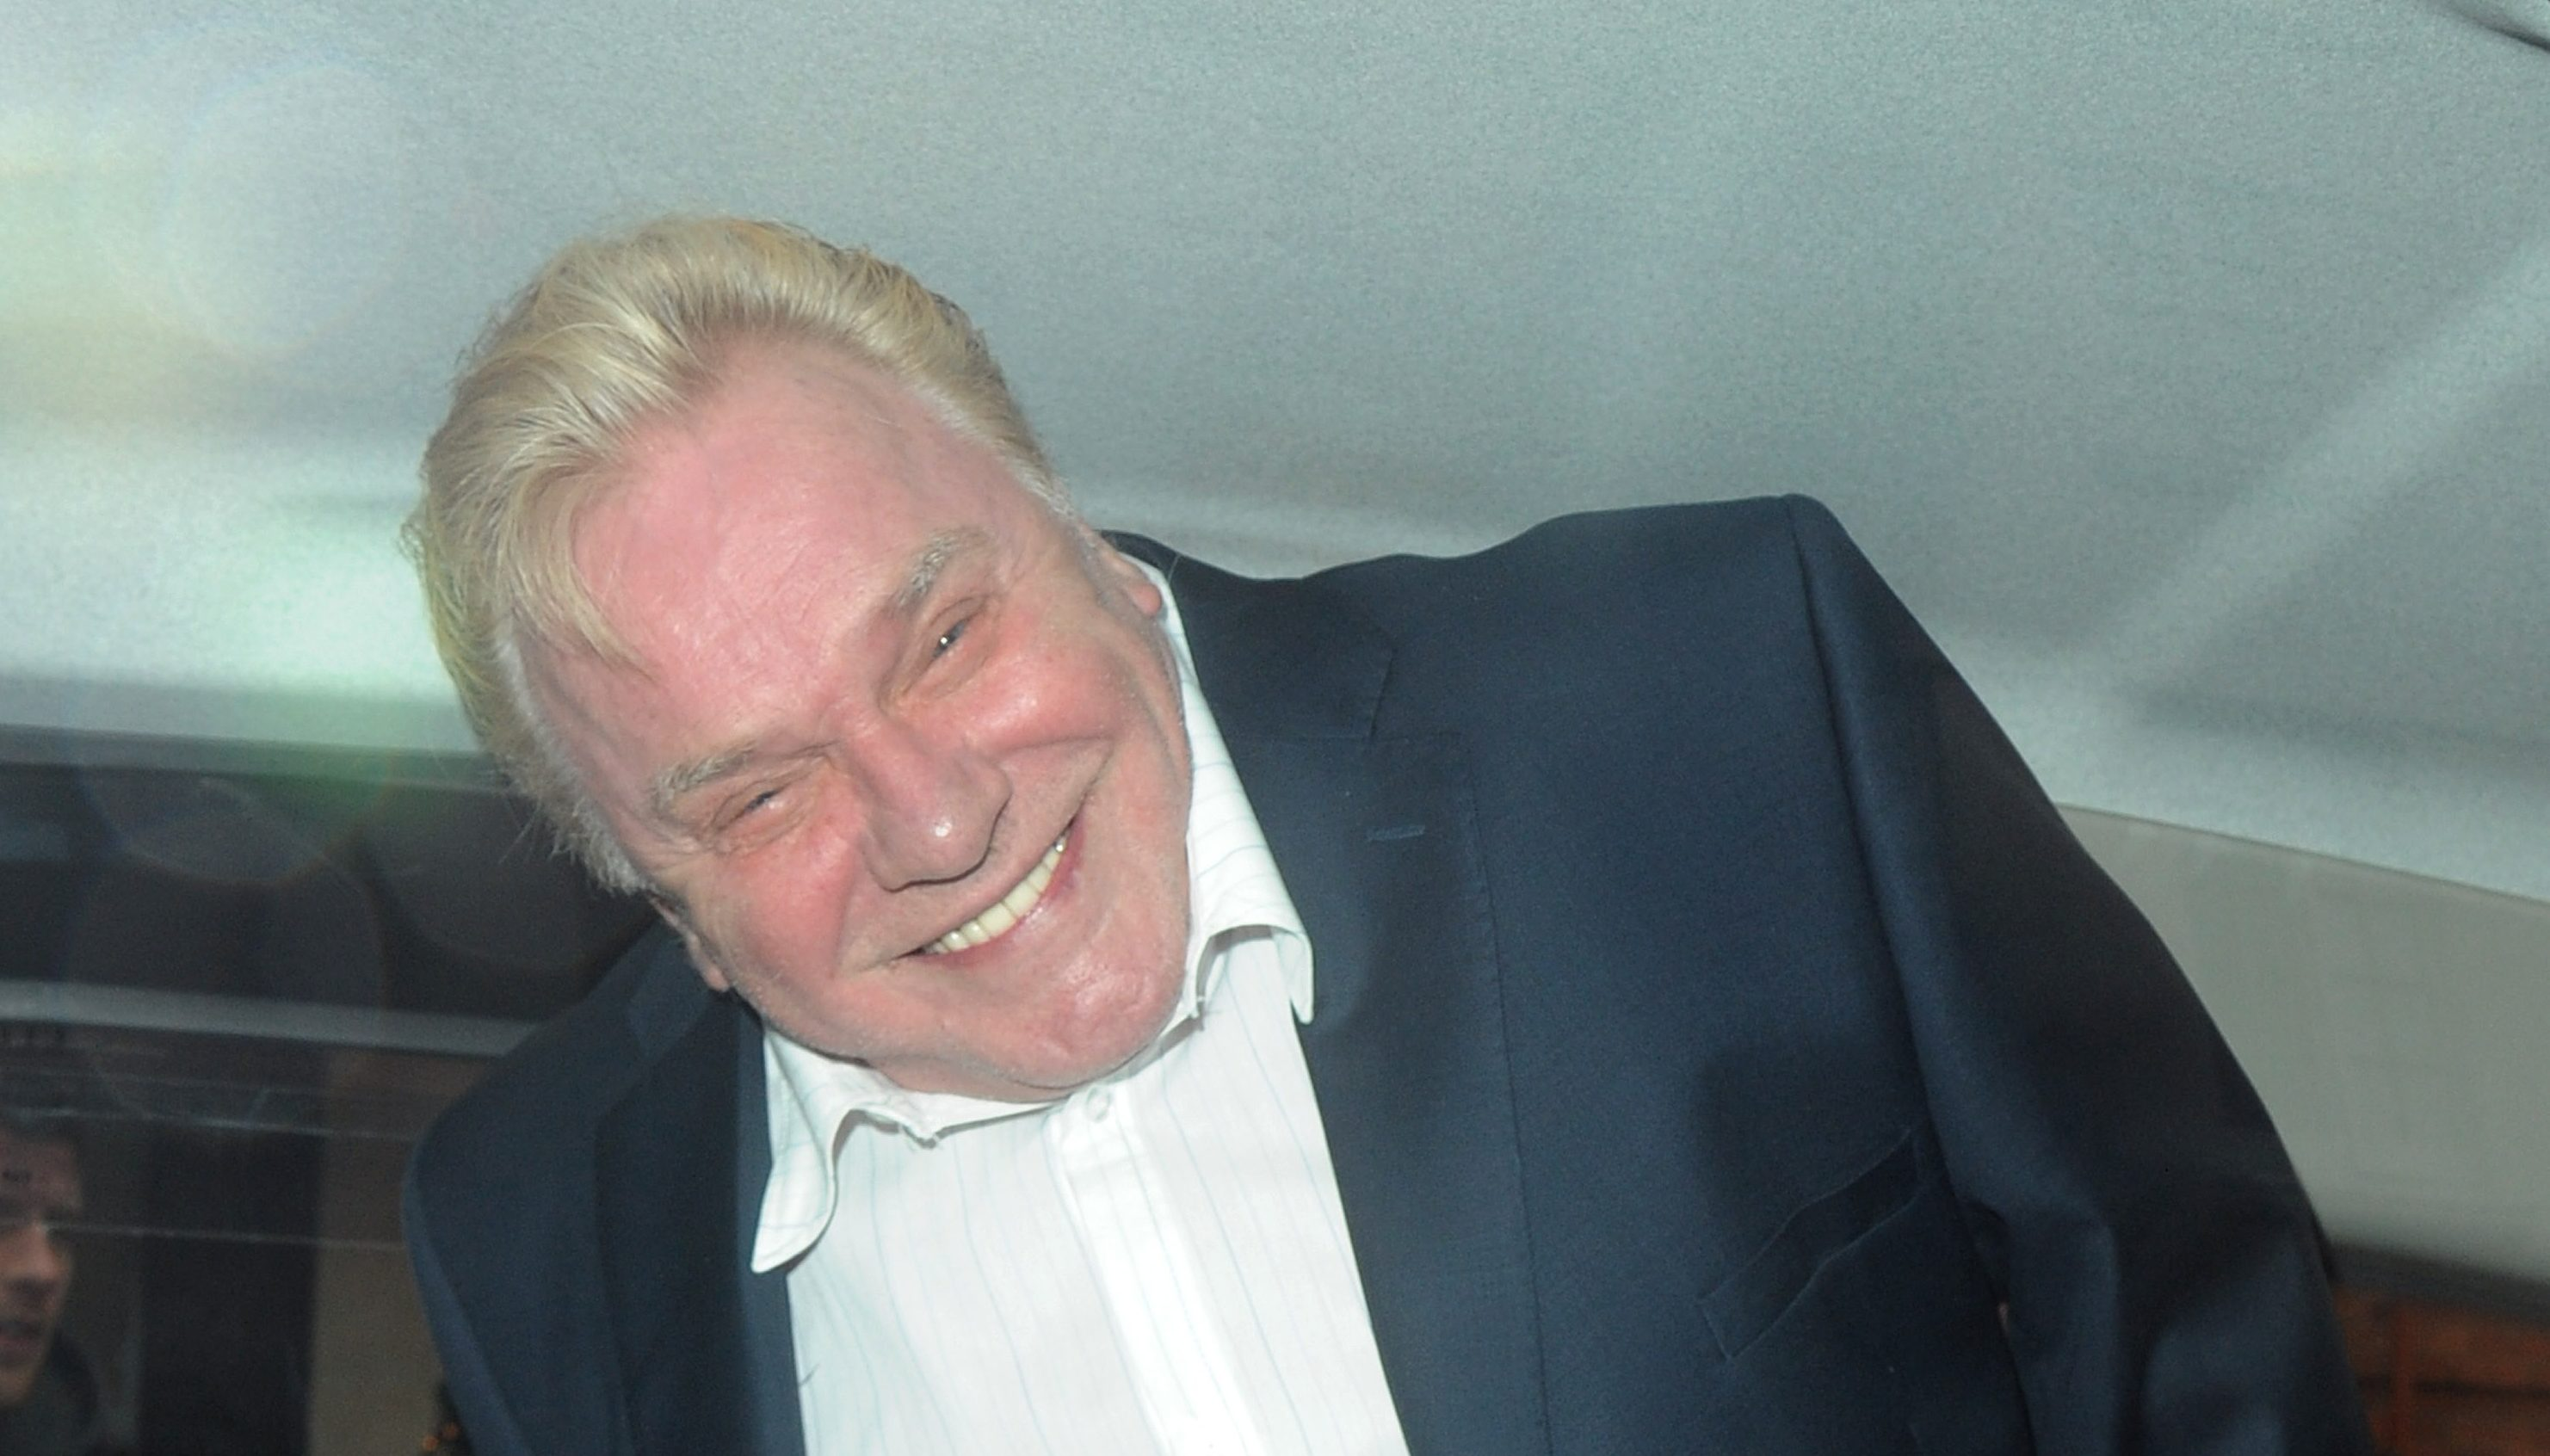 United Kingdom  comedian Freddie Starr found dead at home in Spain